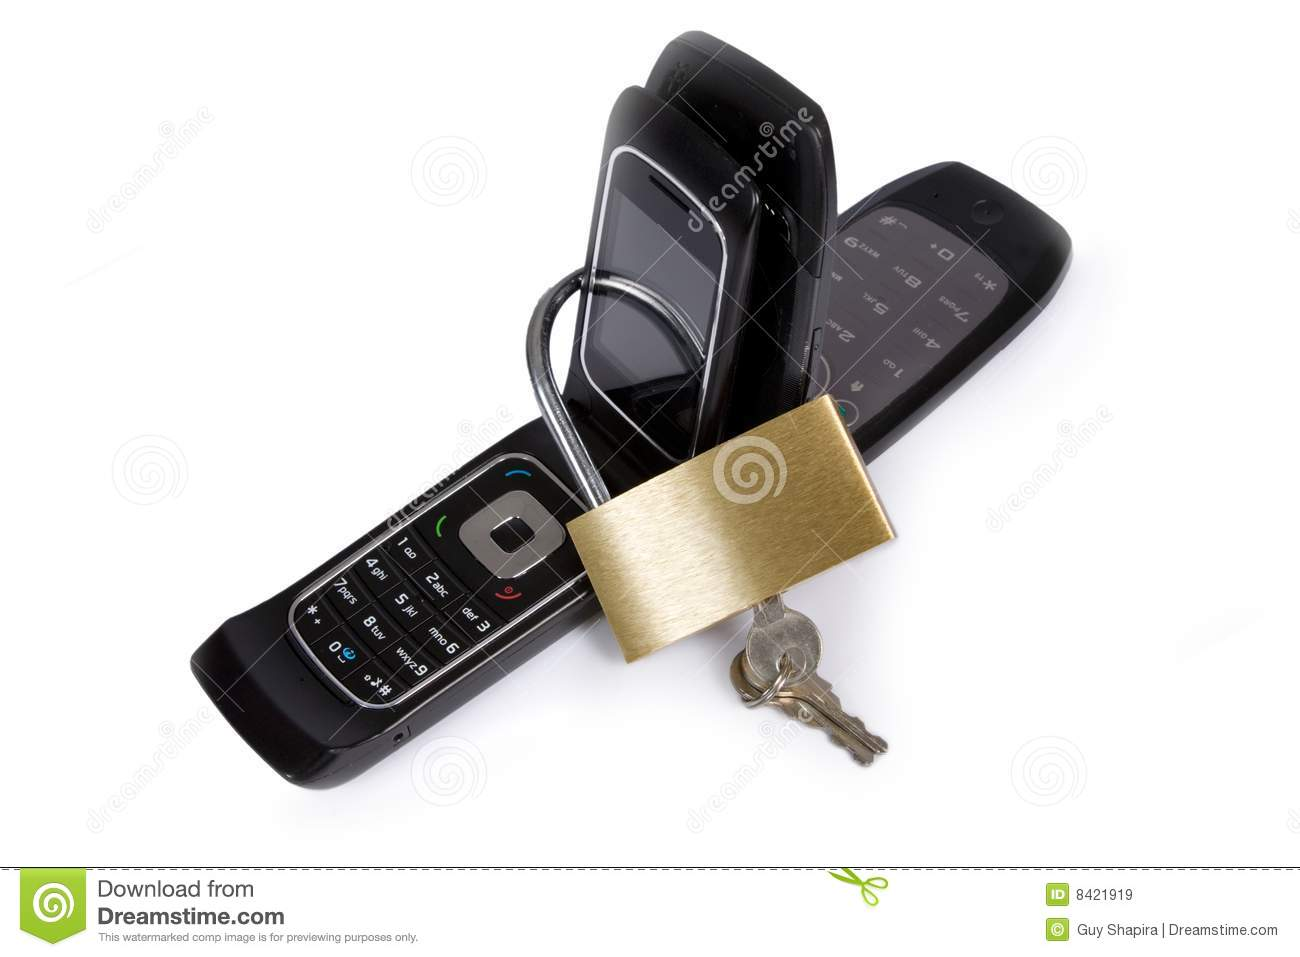 Blocked mobile phone | mobile phone blocker Alfred Cove